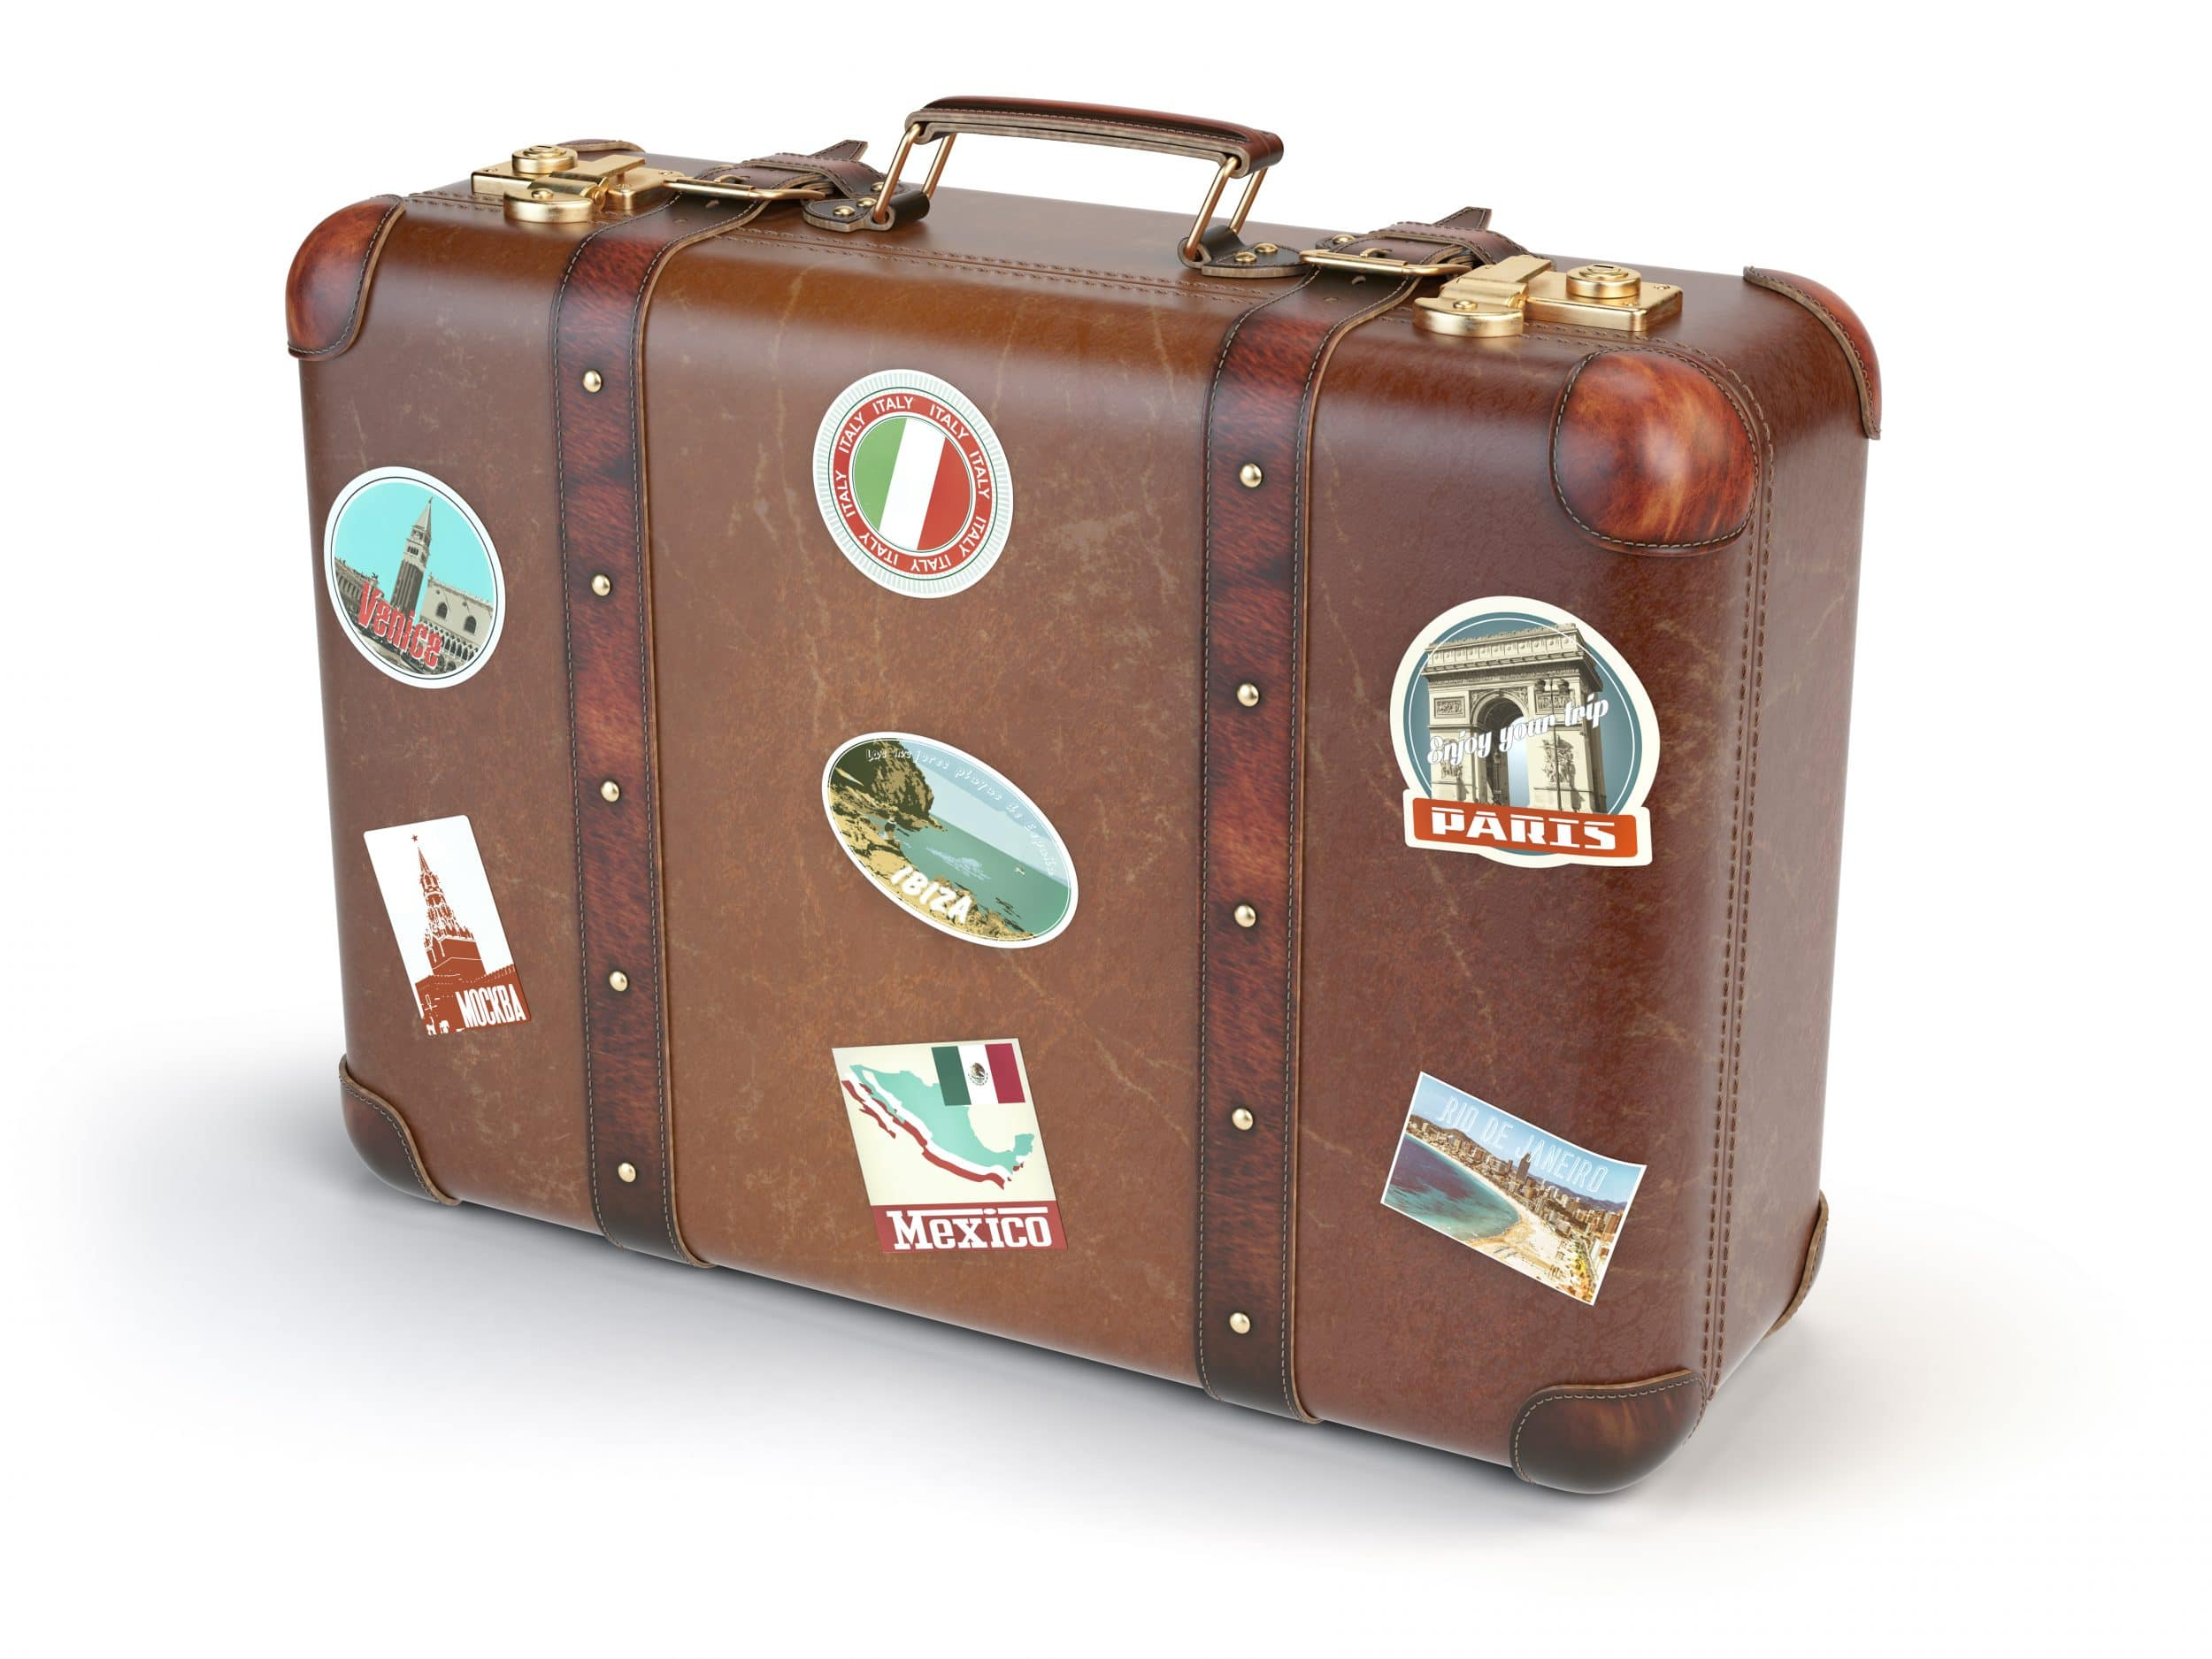 Retro suitcase baggage with travel stickers isolated on white background. 3d illustration